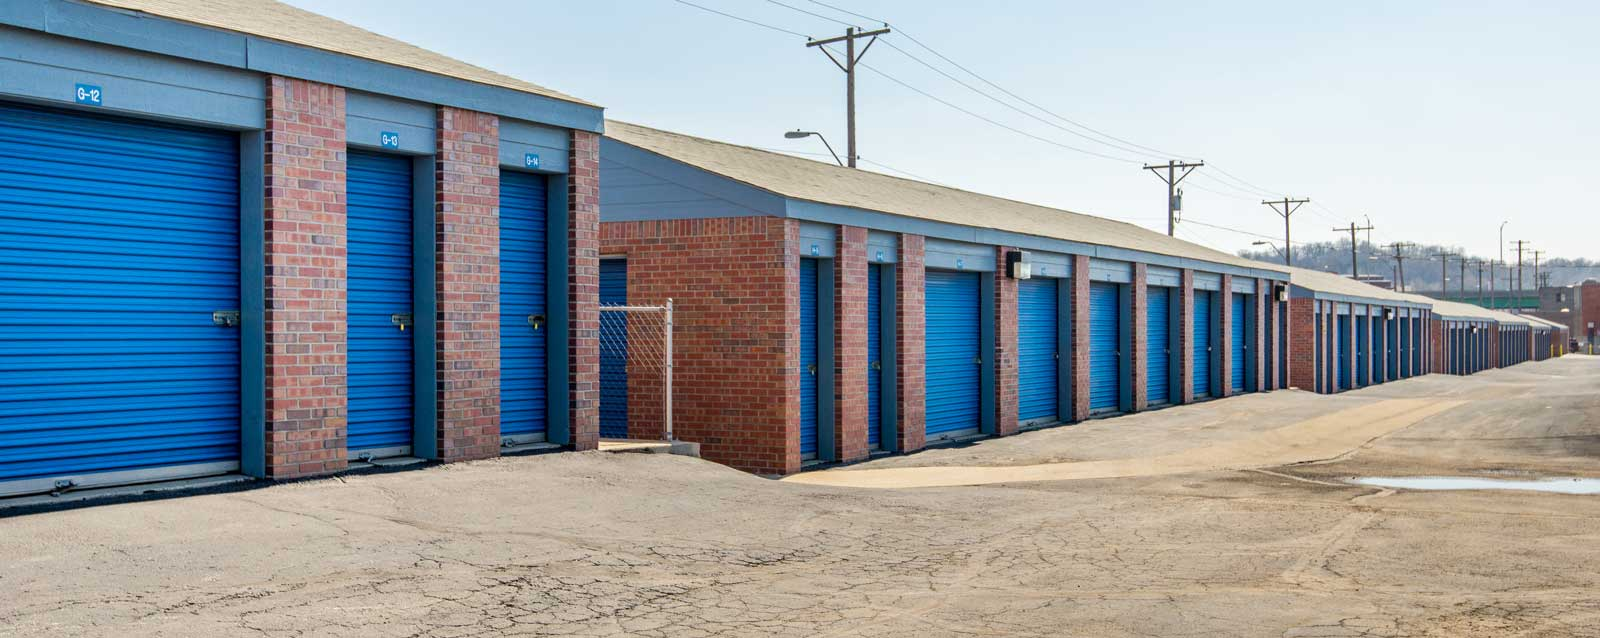 Self Storage In Kansas City Offering All Drive Up Units